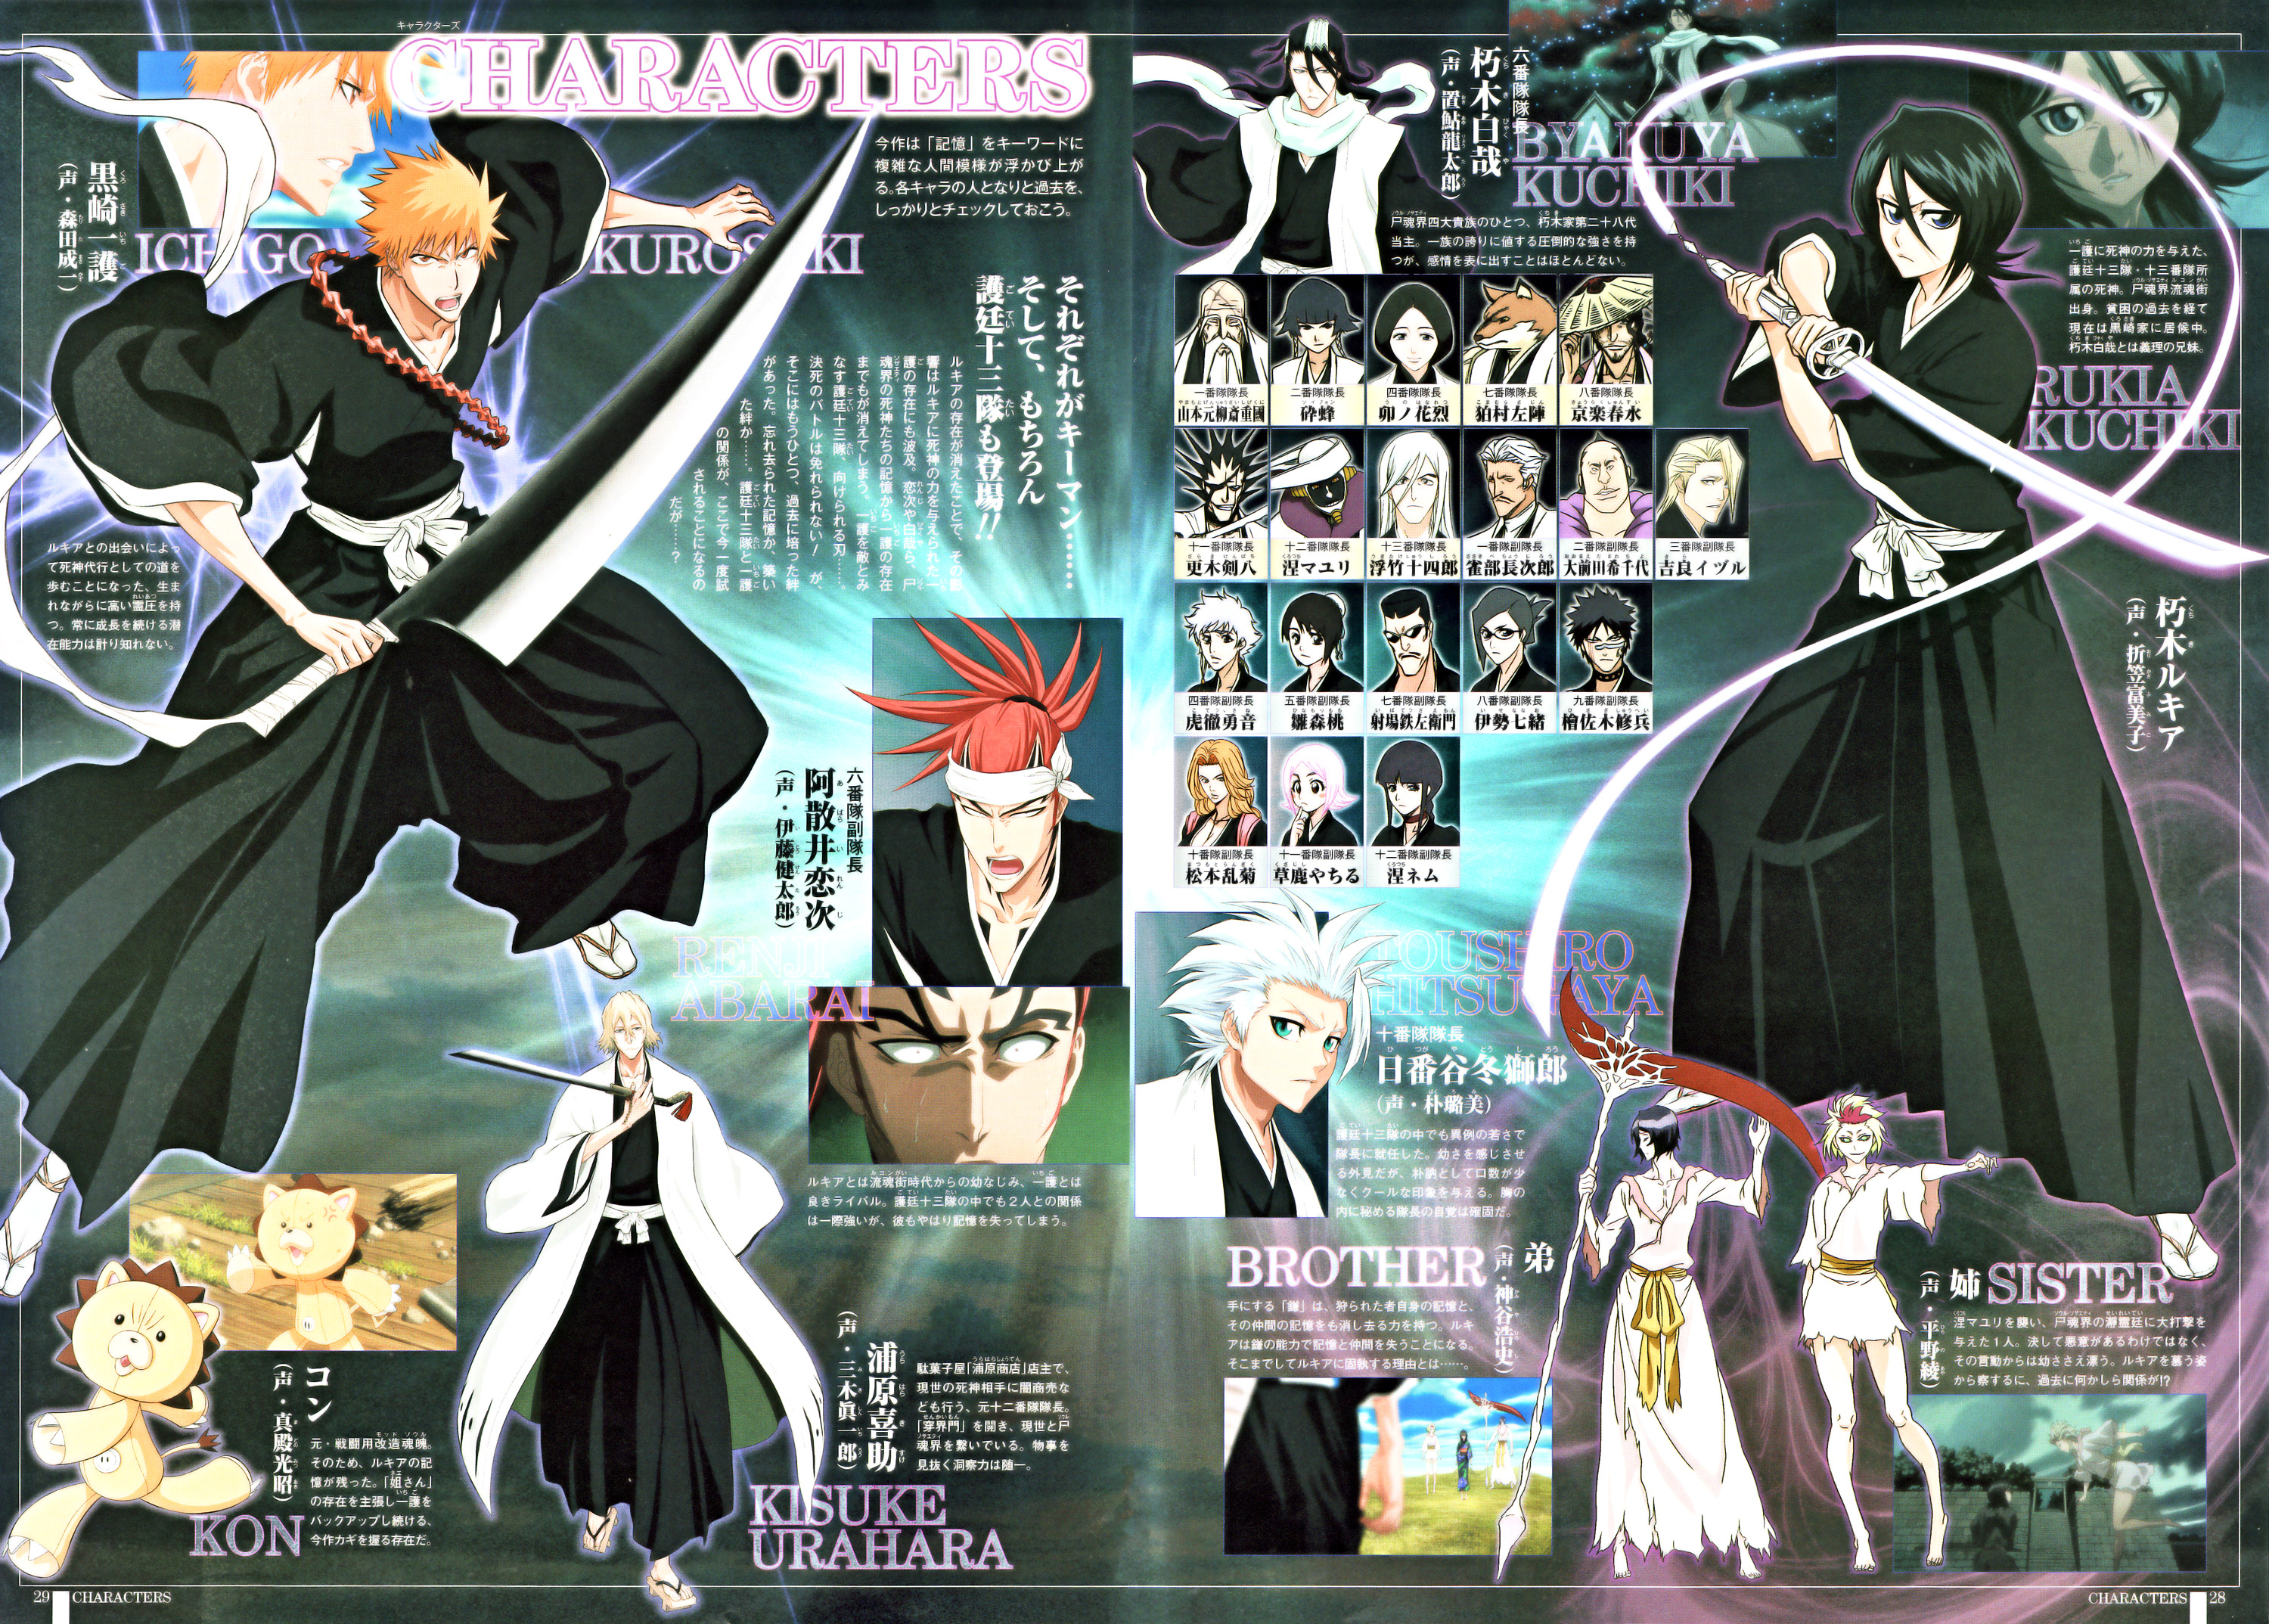 Bleach: Bleach group - Photo Set